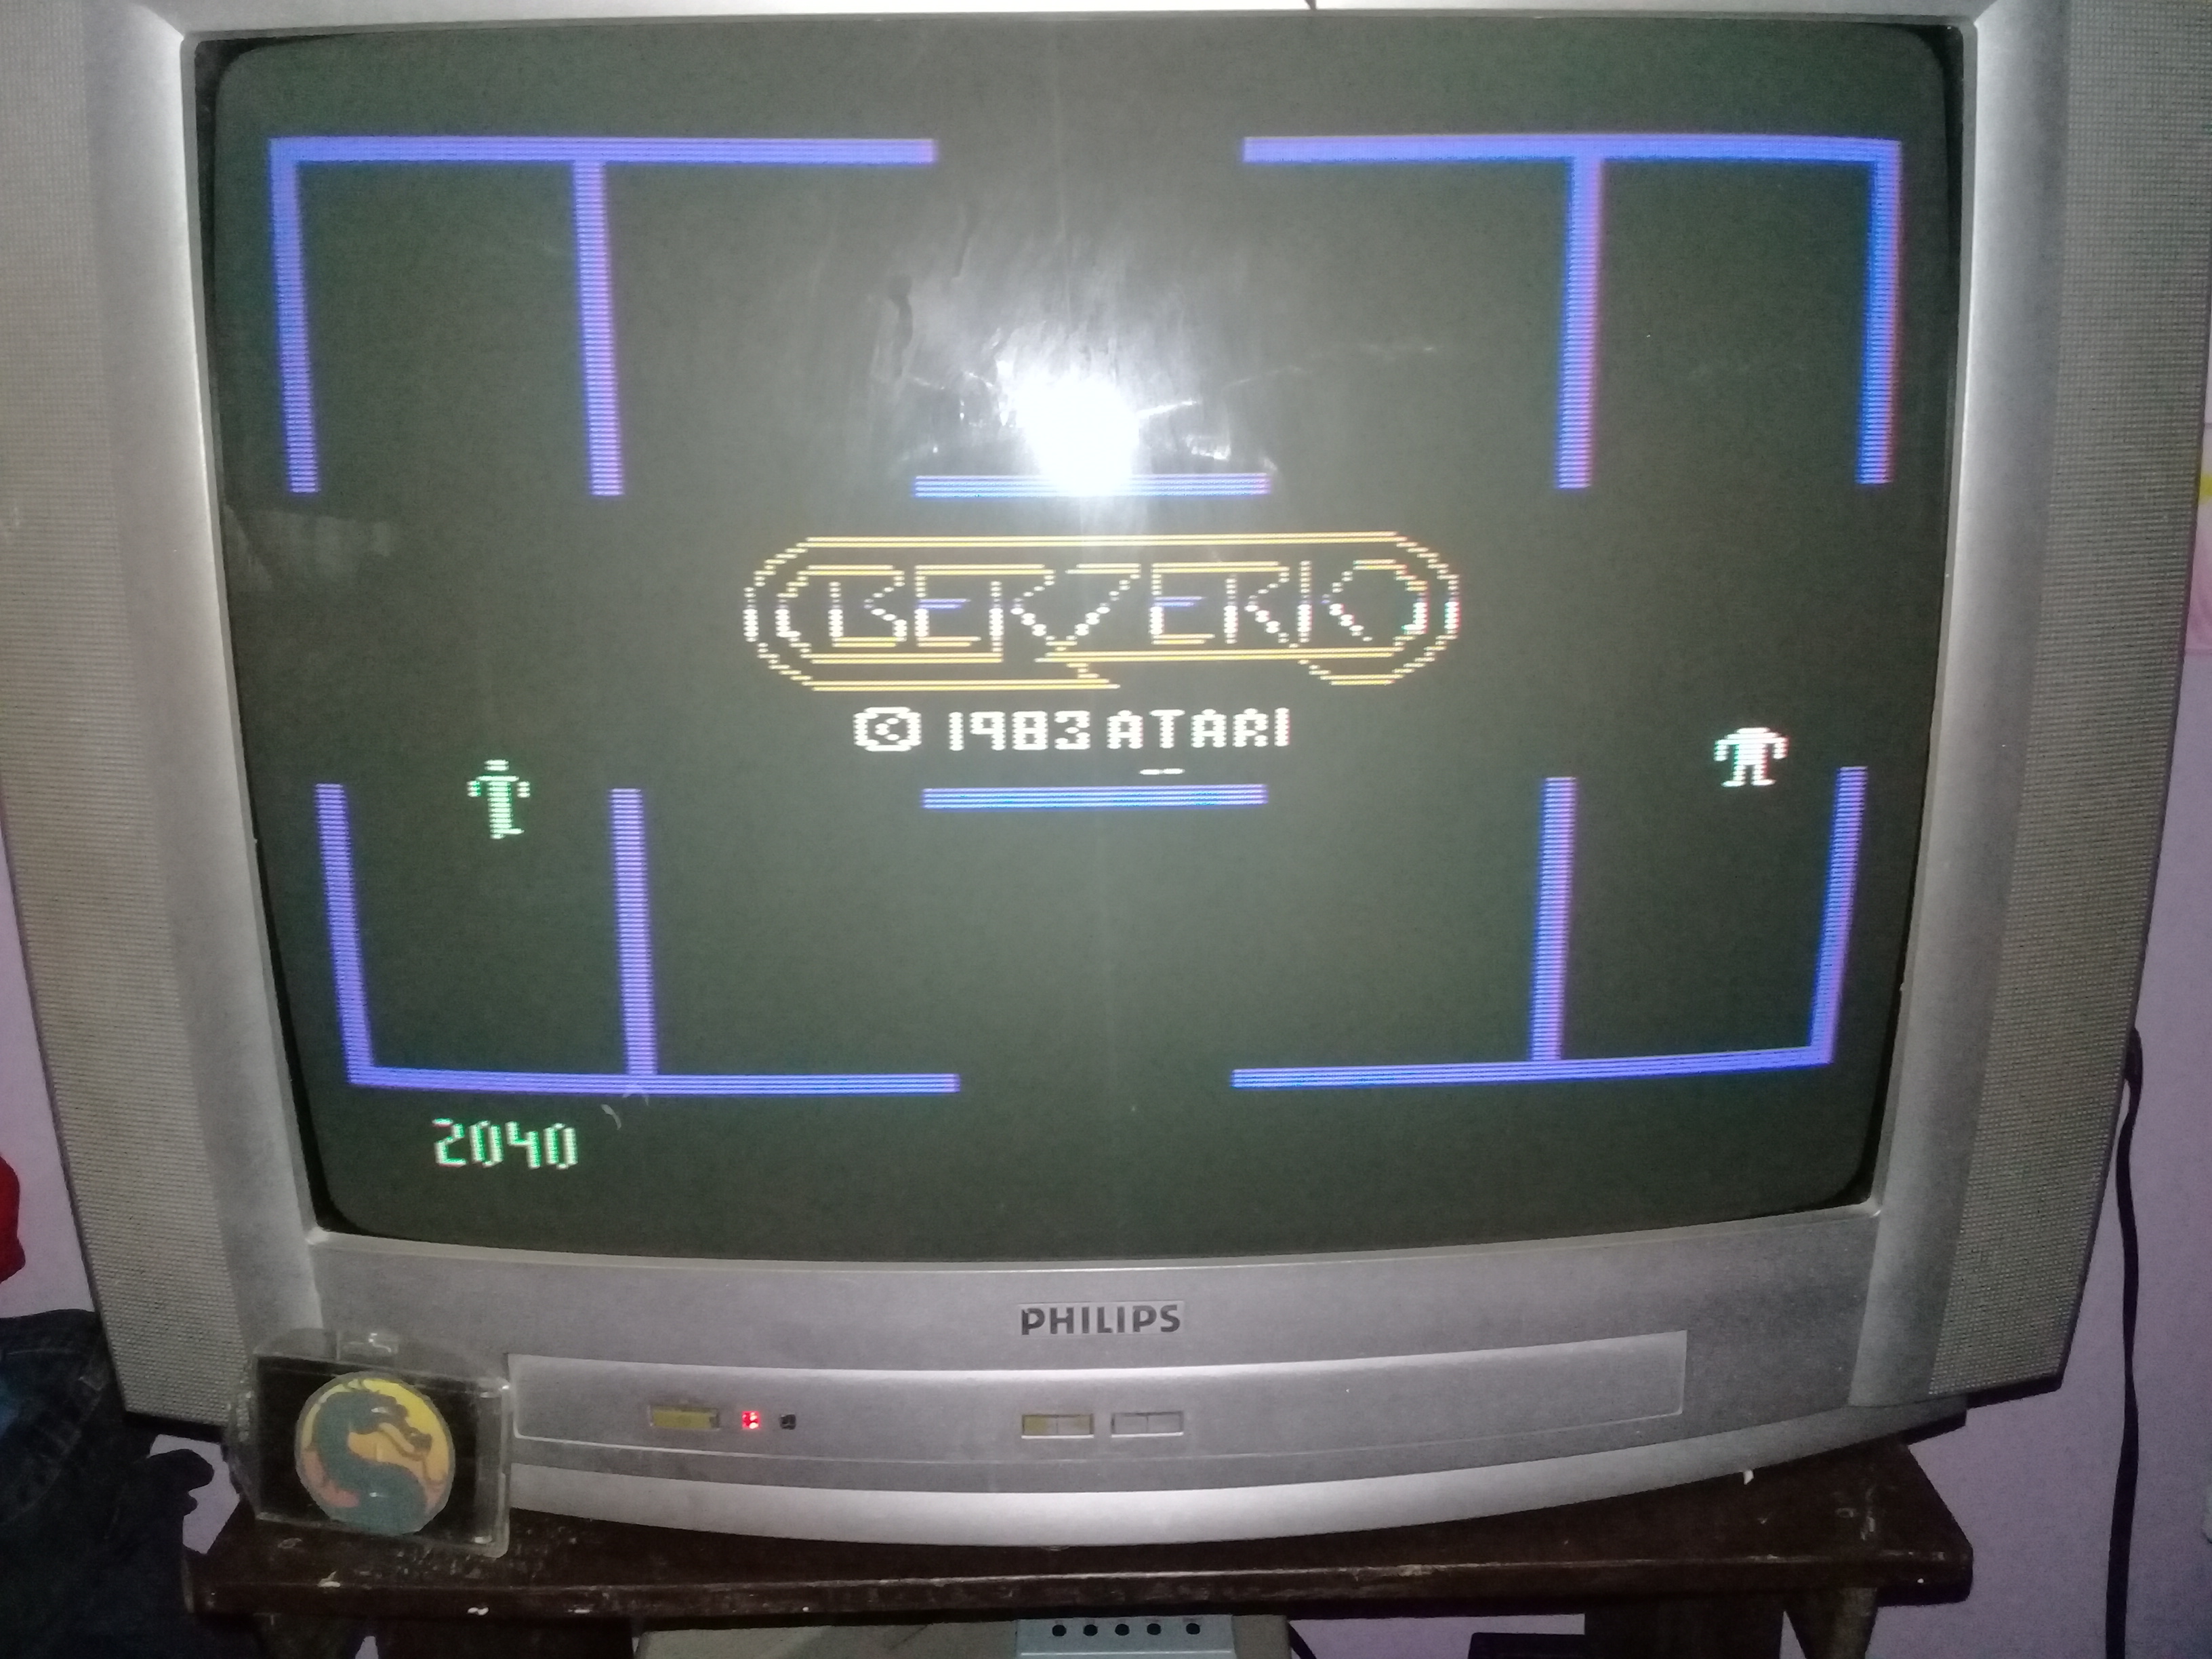 omargeddon: Berzerk (Atari 400/800/XL/XE) 2,040 points on 2020-03-08 20:06:55